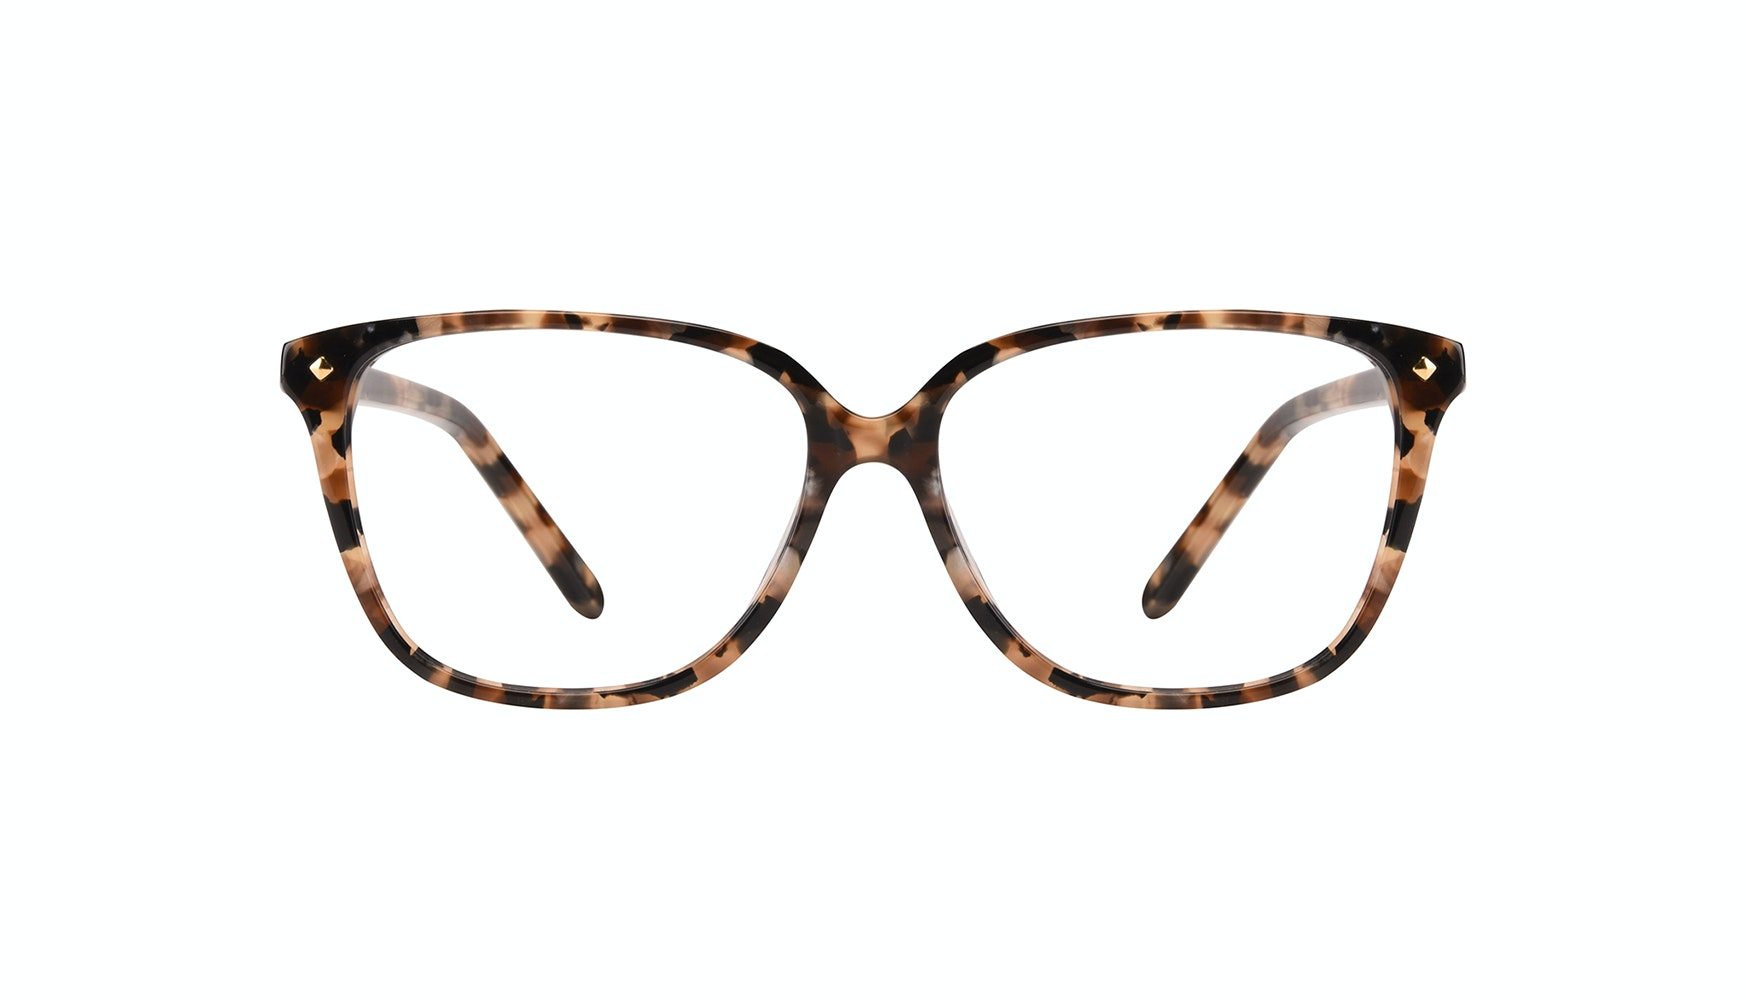 Affordable Fashion Glasses Rectangle Square Eyeglasses Women Muse Gold Flake